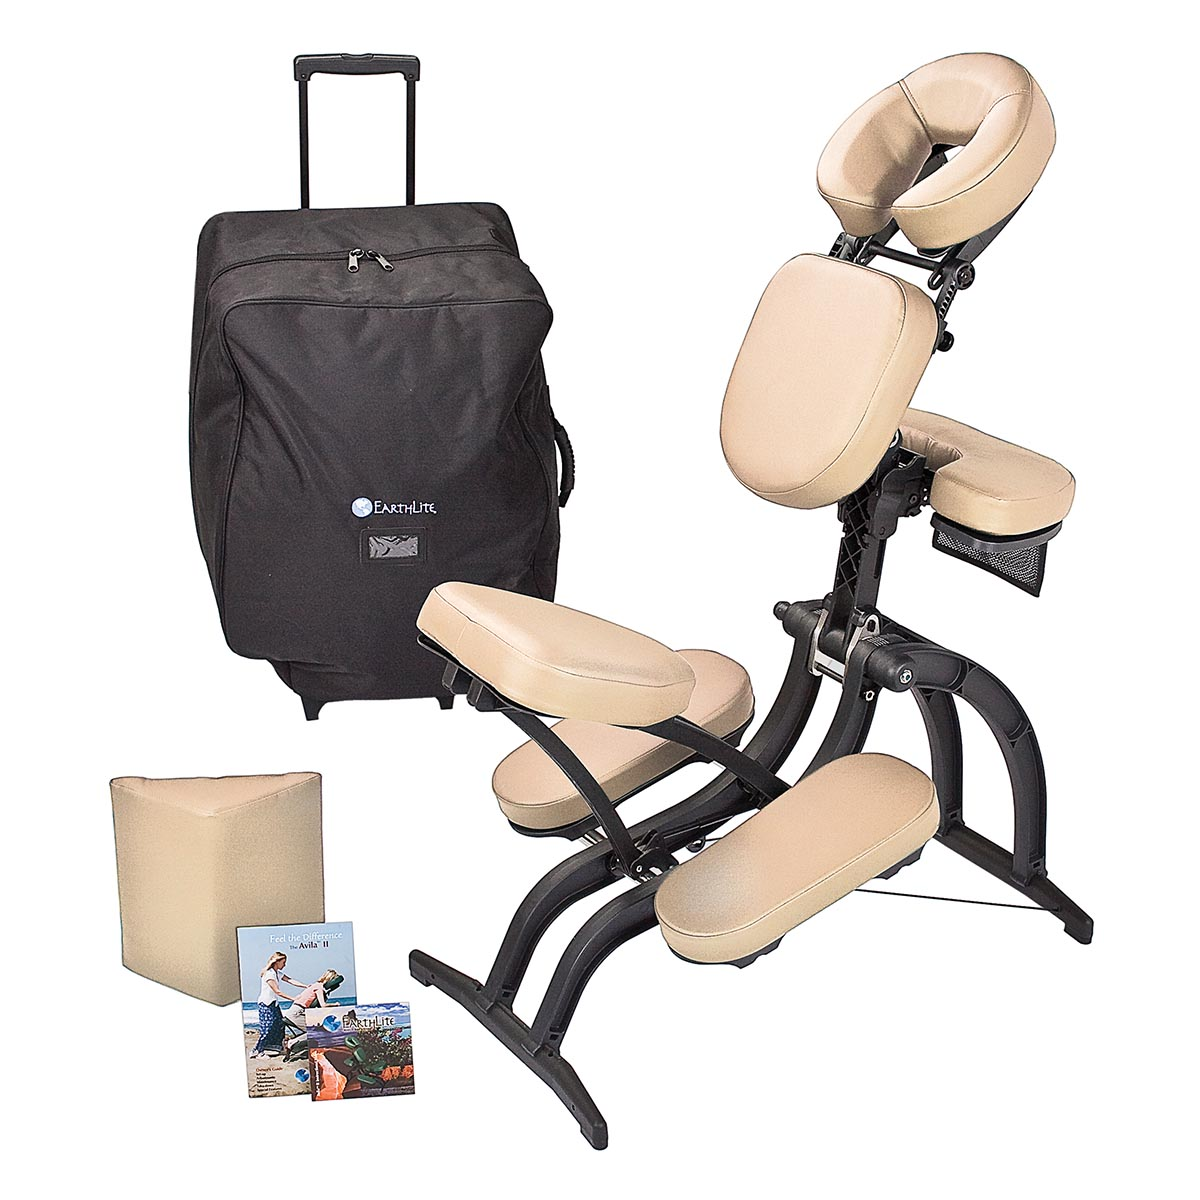 Dolphin ii portable chair chair portable chair massager with heat portable therapy soap note - Portable reflexology chair ...